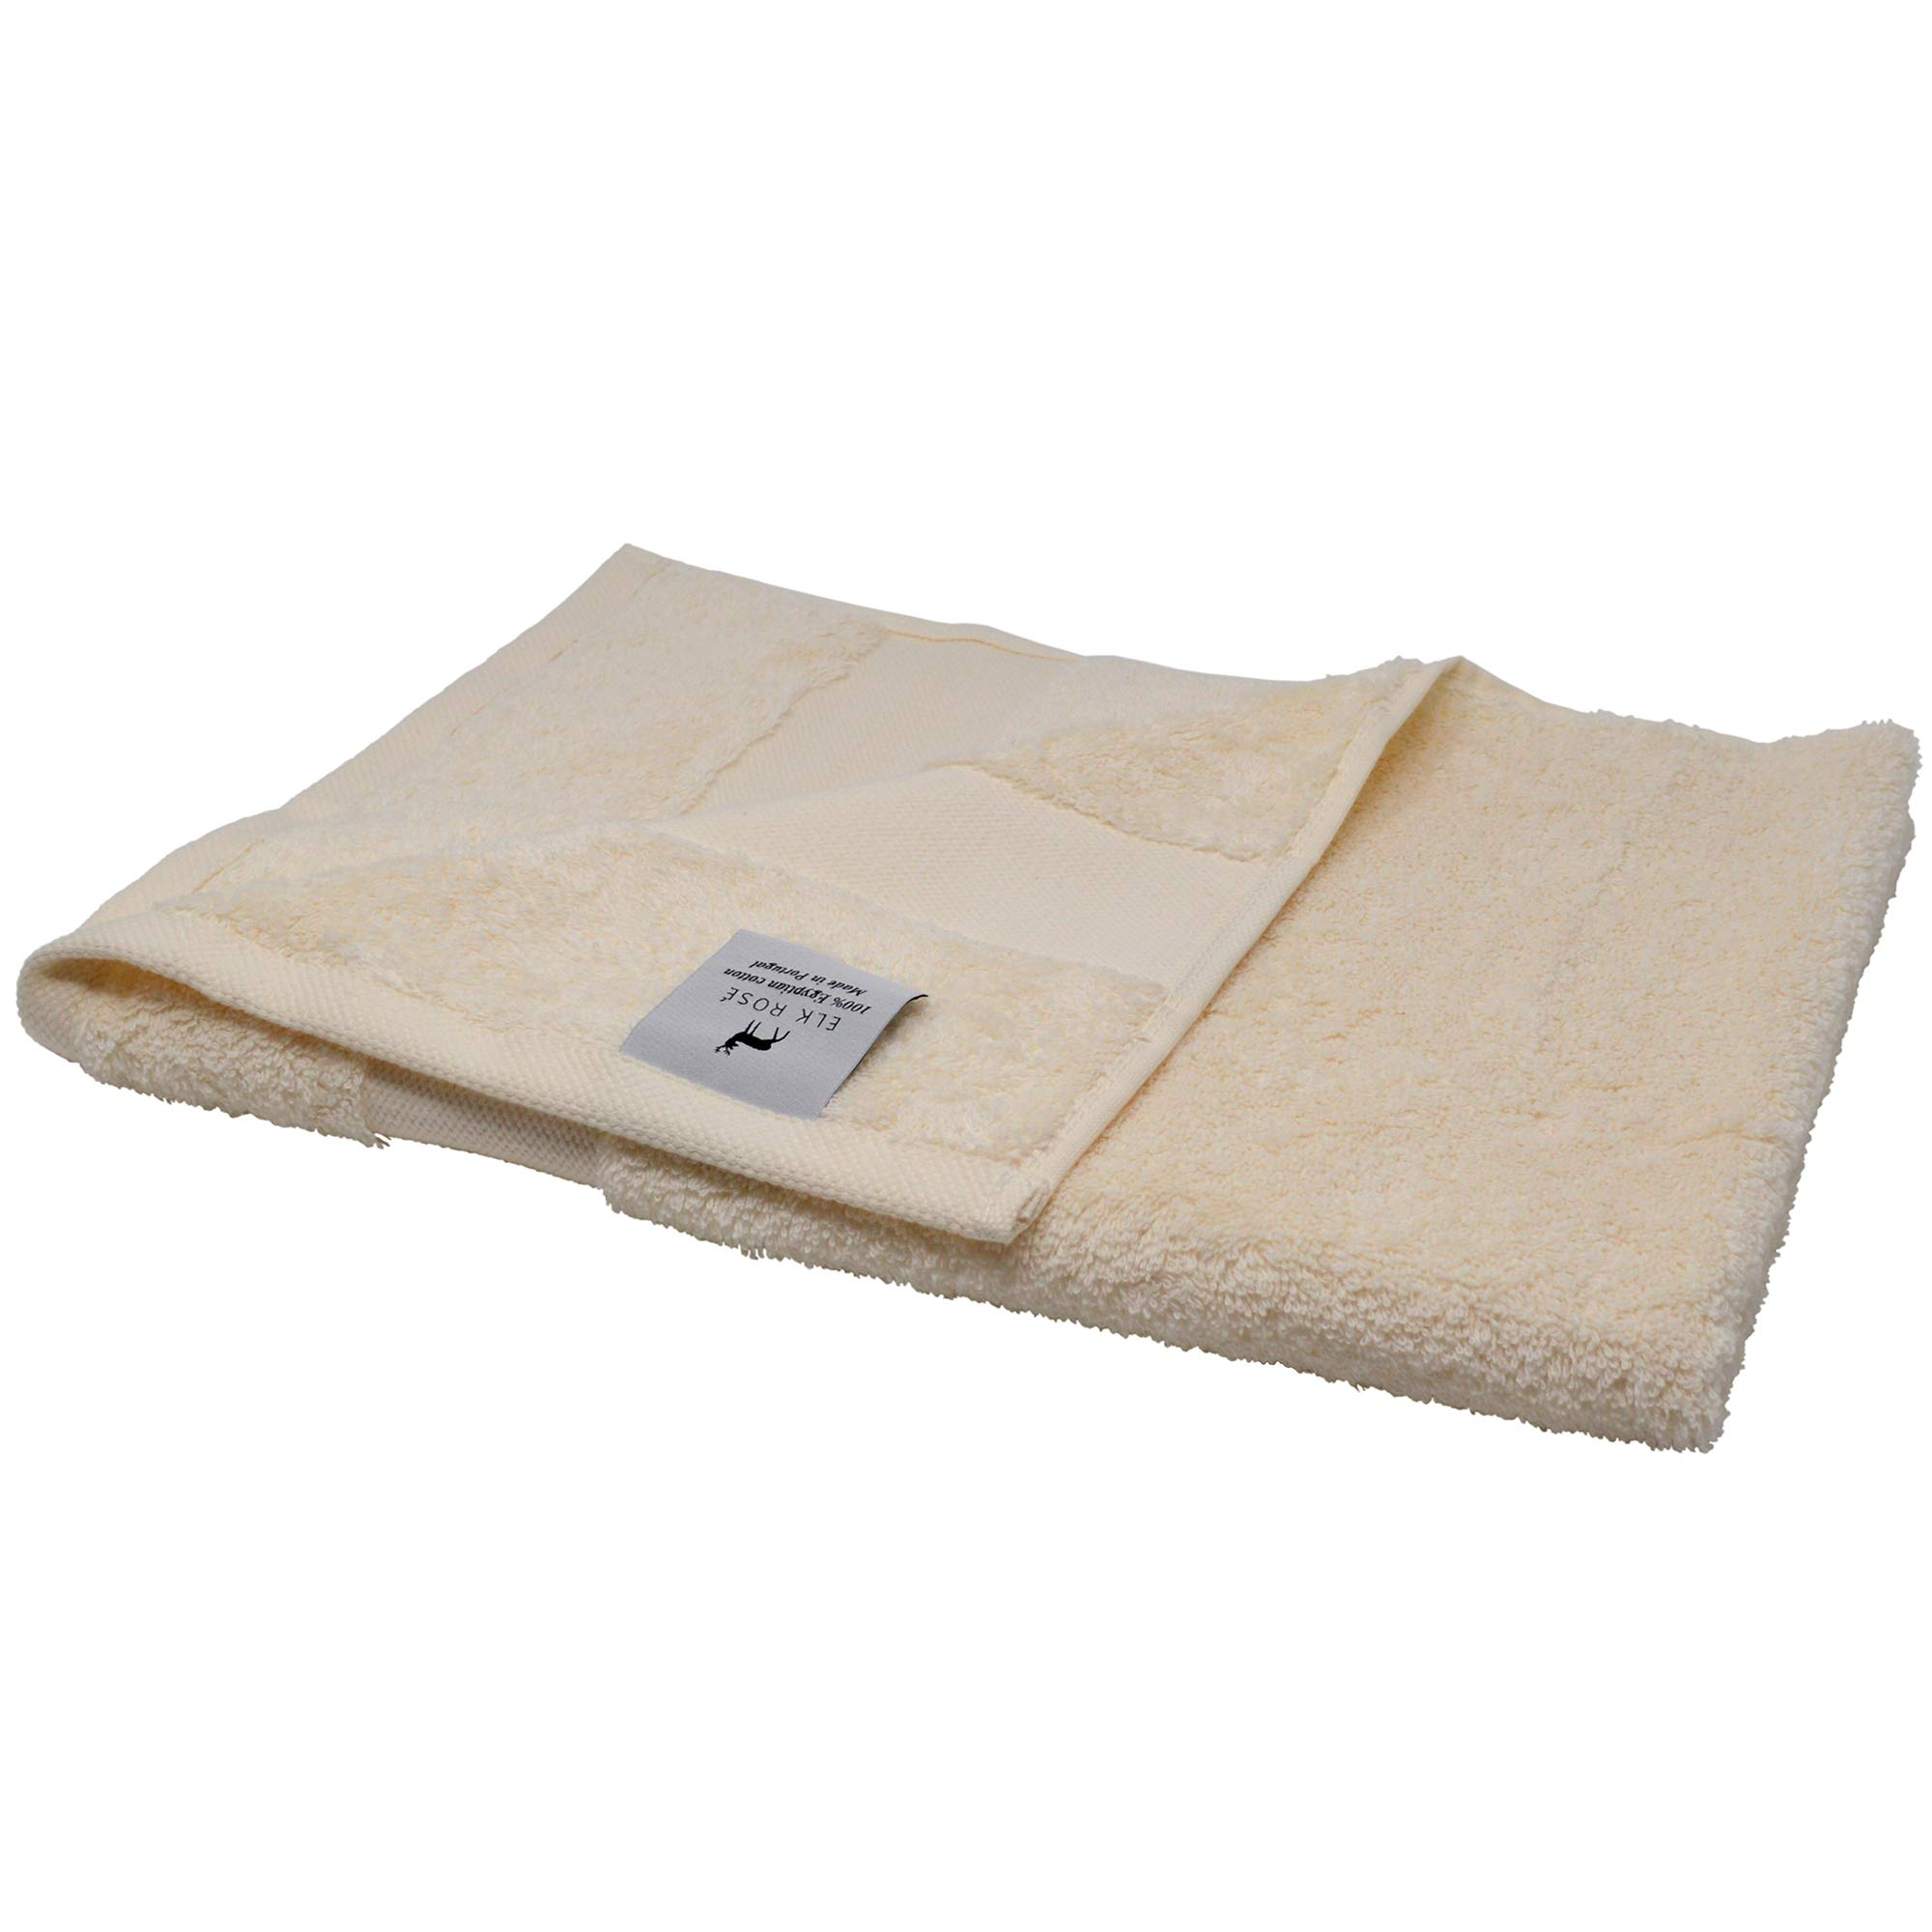 """ELK ROSÉ Extremely Soft & Fluffy 100% Egyptian """"Giza"""" Cotton Hand Towel for Hotels, Spas & Home (Ivory)"""